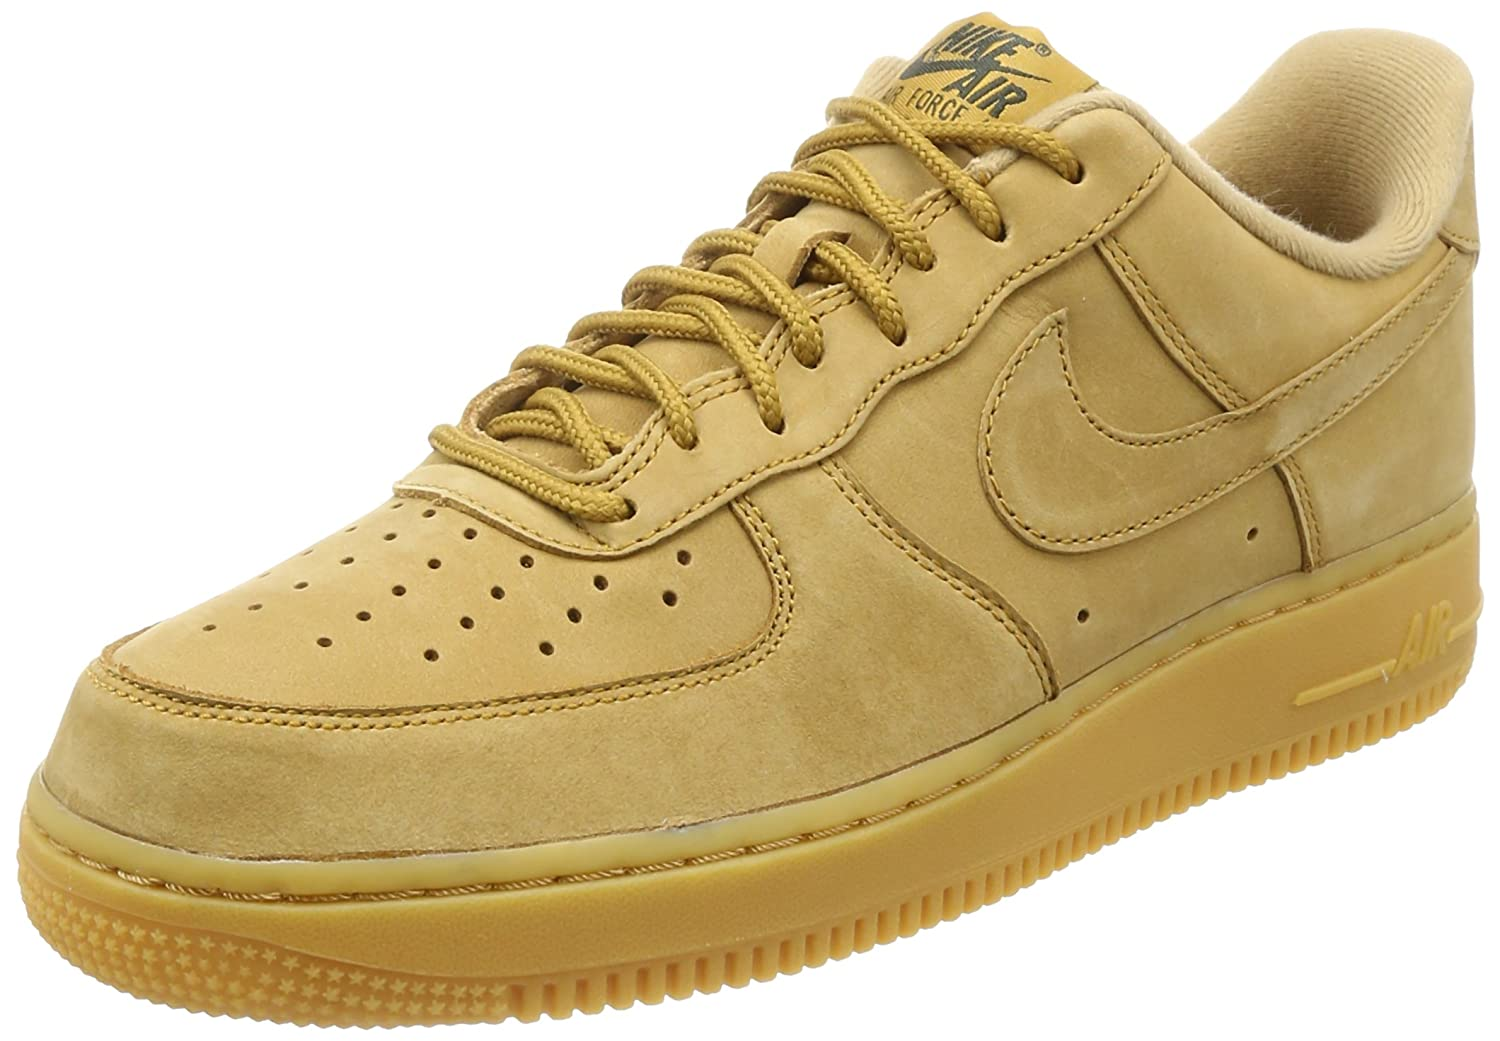 MultiFarbe (Flax Flax Gum Light braun Outdoor Grün 200) Nike Air Force 1 '07 WB, Hausschuhe de Deporte para Hombre